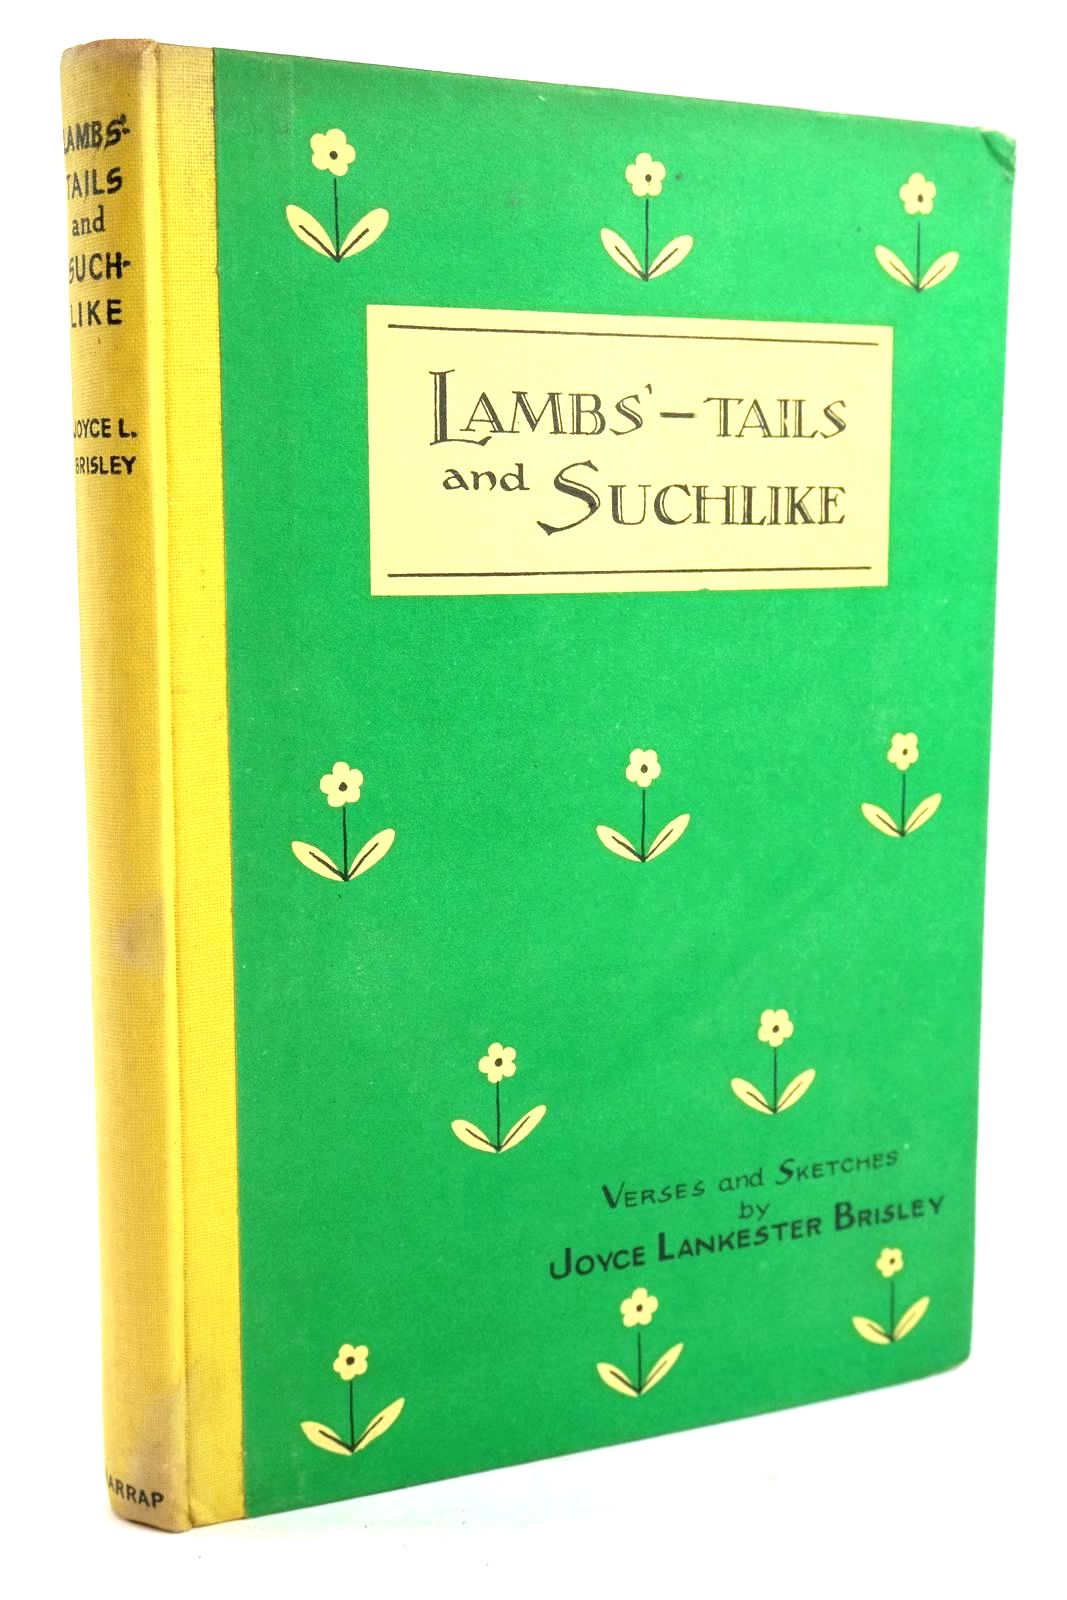 Photo of LAMBS'-TAILS AND SUCHLIKE written by Brisley, Joyce Lankester illustrated by Brisley, Joyce Lankester published by George G. Harrap & Co. Ltd. (STOCK CODE: 1319753)  for sale by Stella & Rose's Books